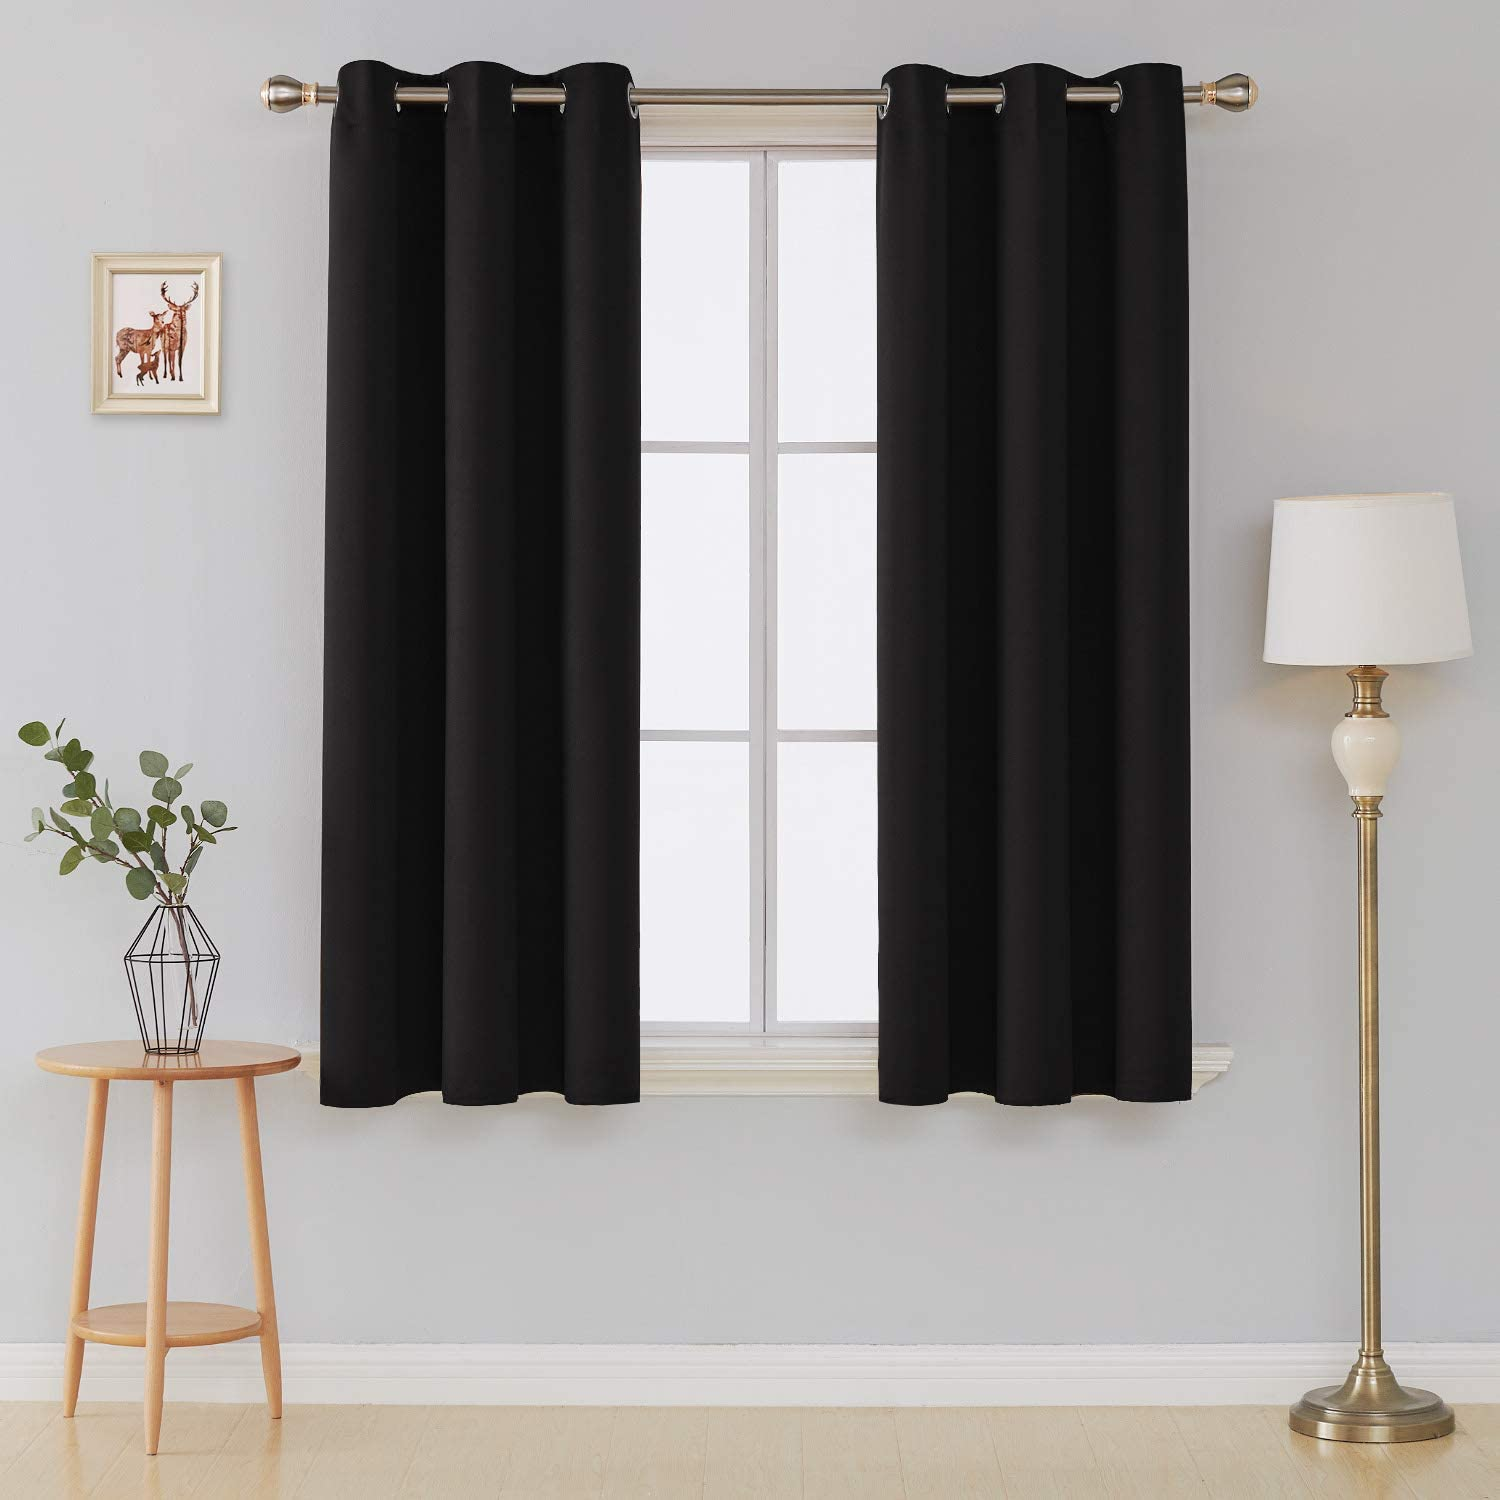 Deconovo Window Curtain Panel Room Darkening Thermal Insulated Curtains 42 Inch by 54 Inch Black 2 Curtain Panels